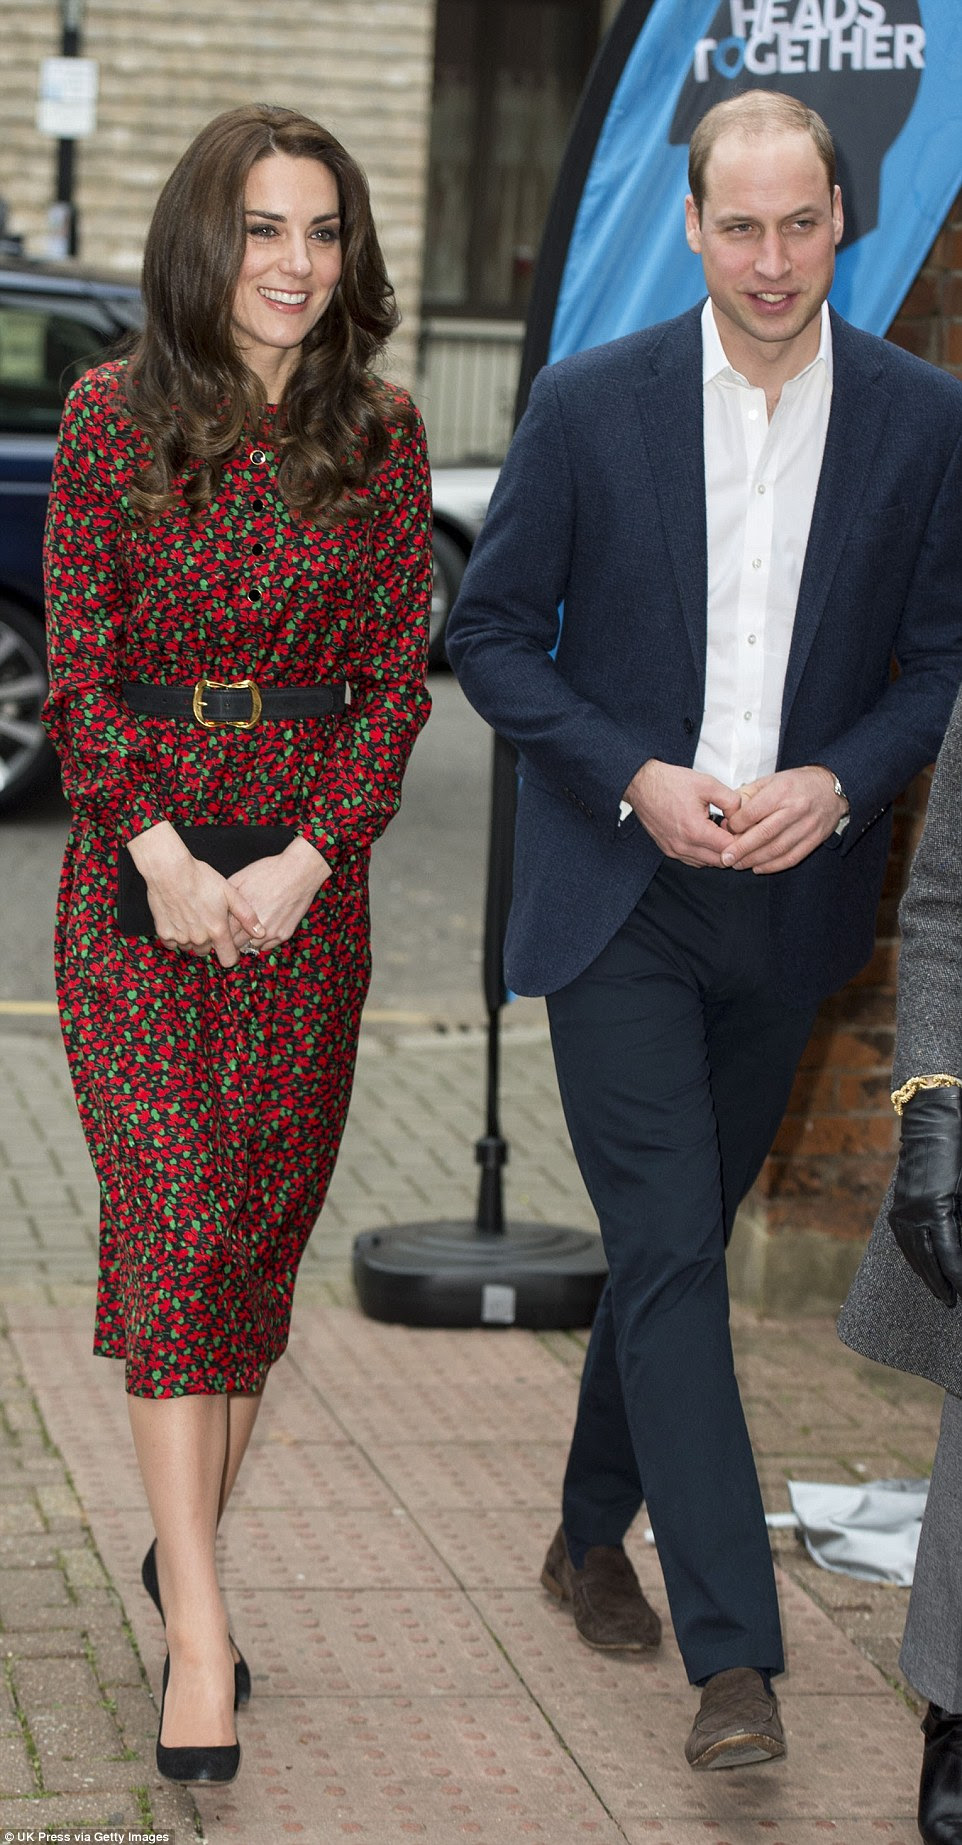 The royals looked in good form while carrying out their last official duties before the Christmas break